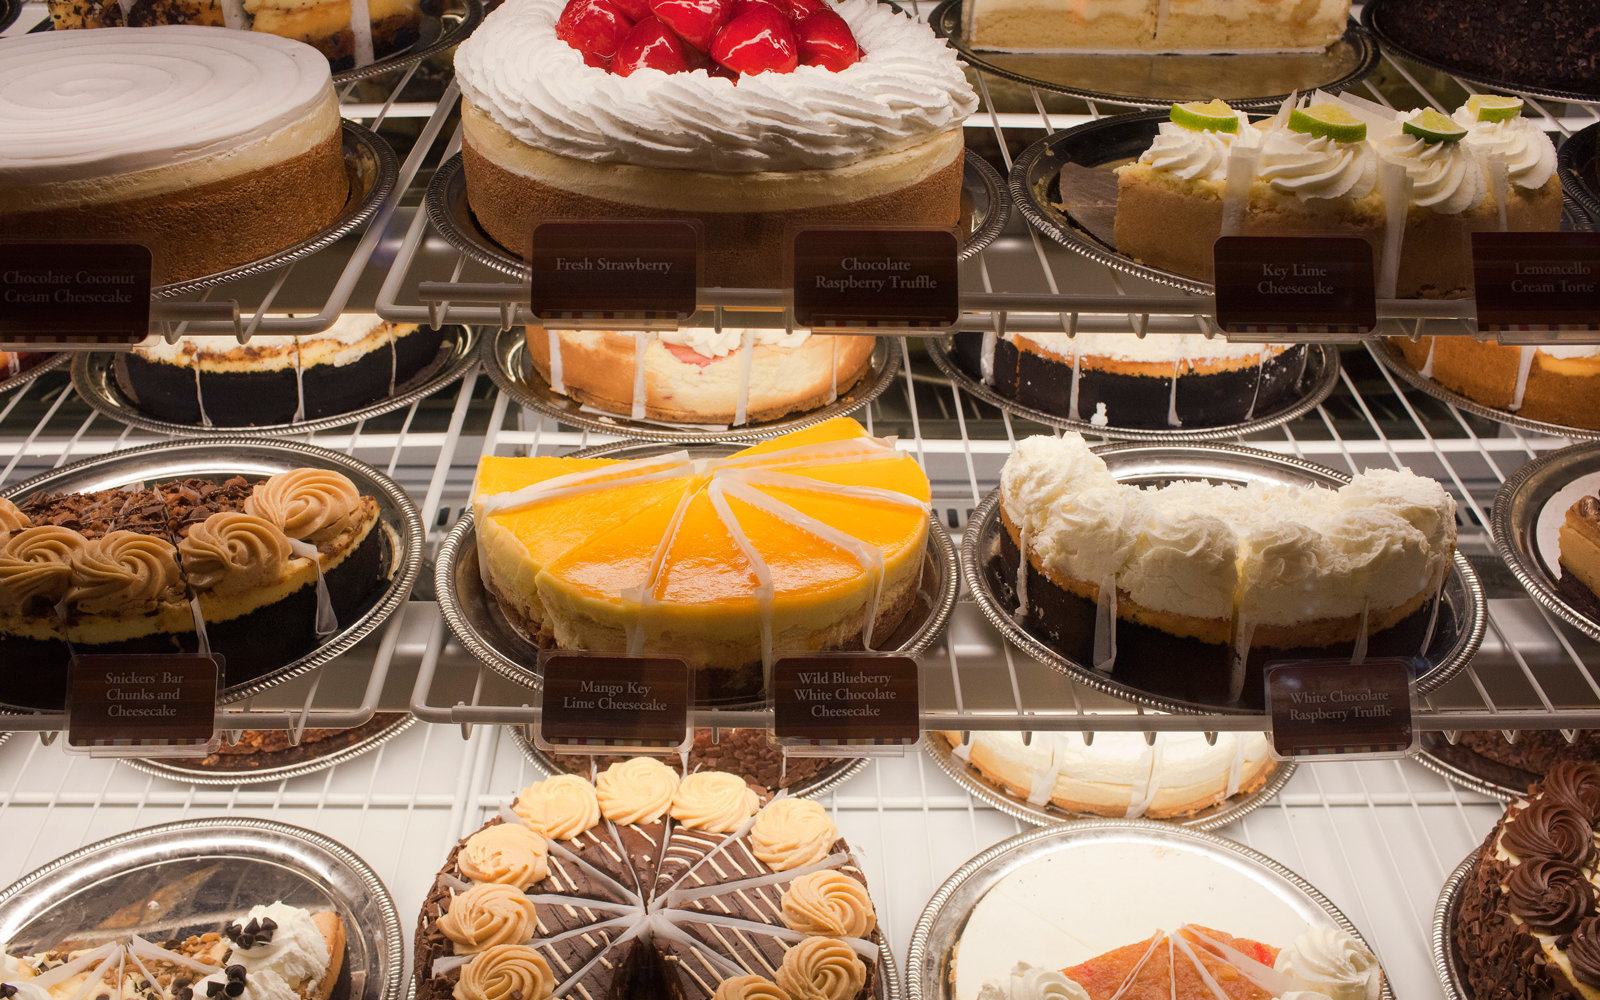 The Cheescake Factory display at the Mall of the Emirates